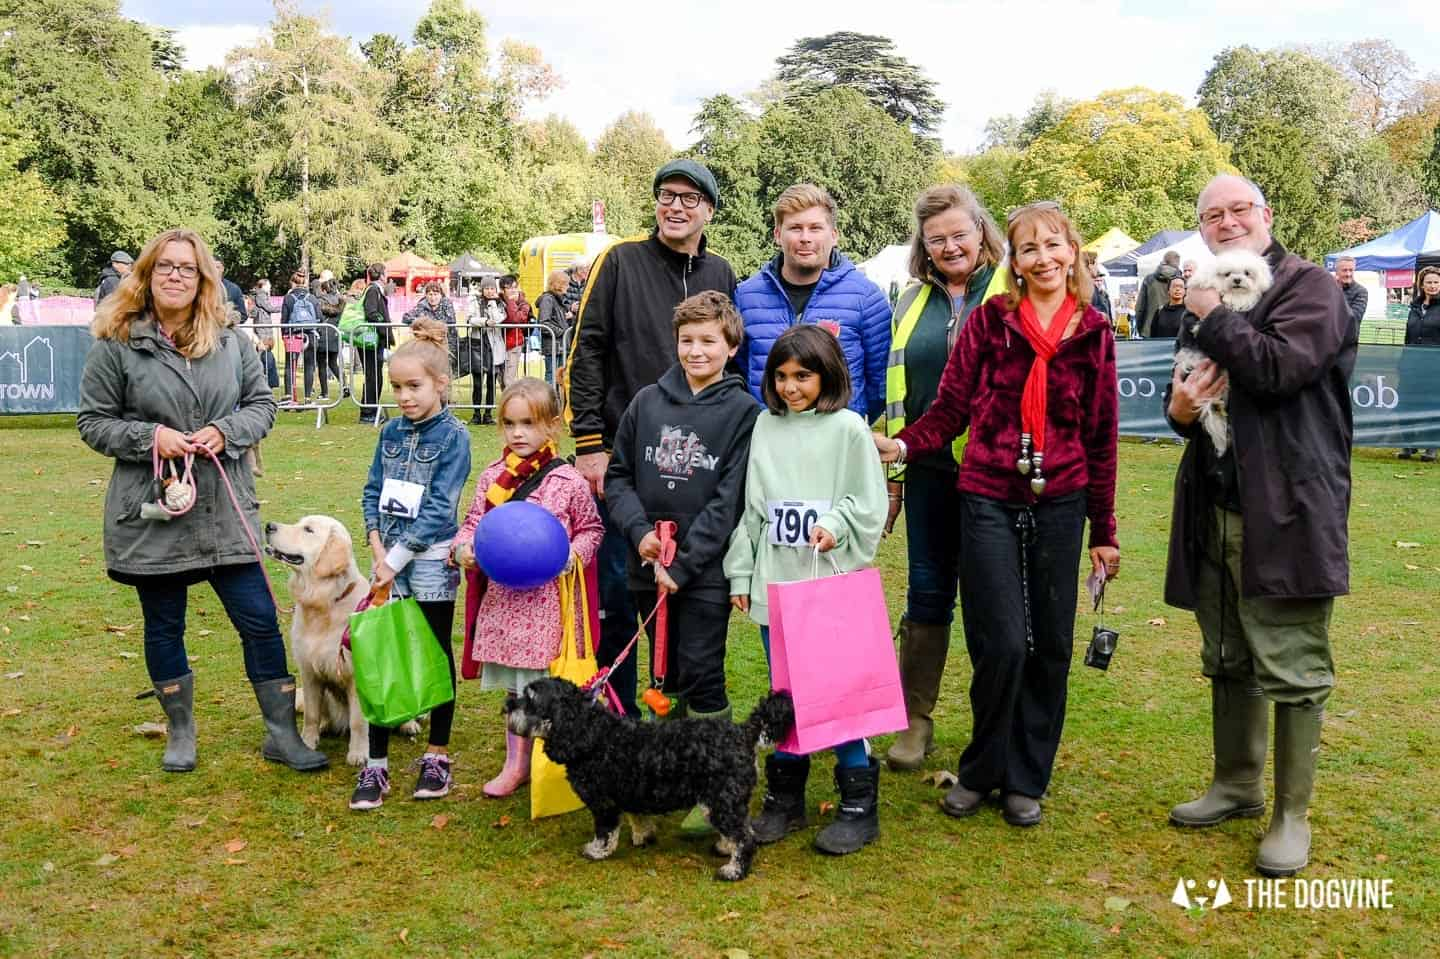 The Chiswick House Dog Show My Dog's Got Talent 8